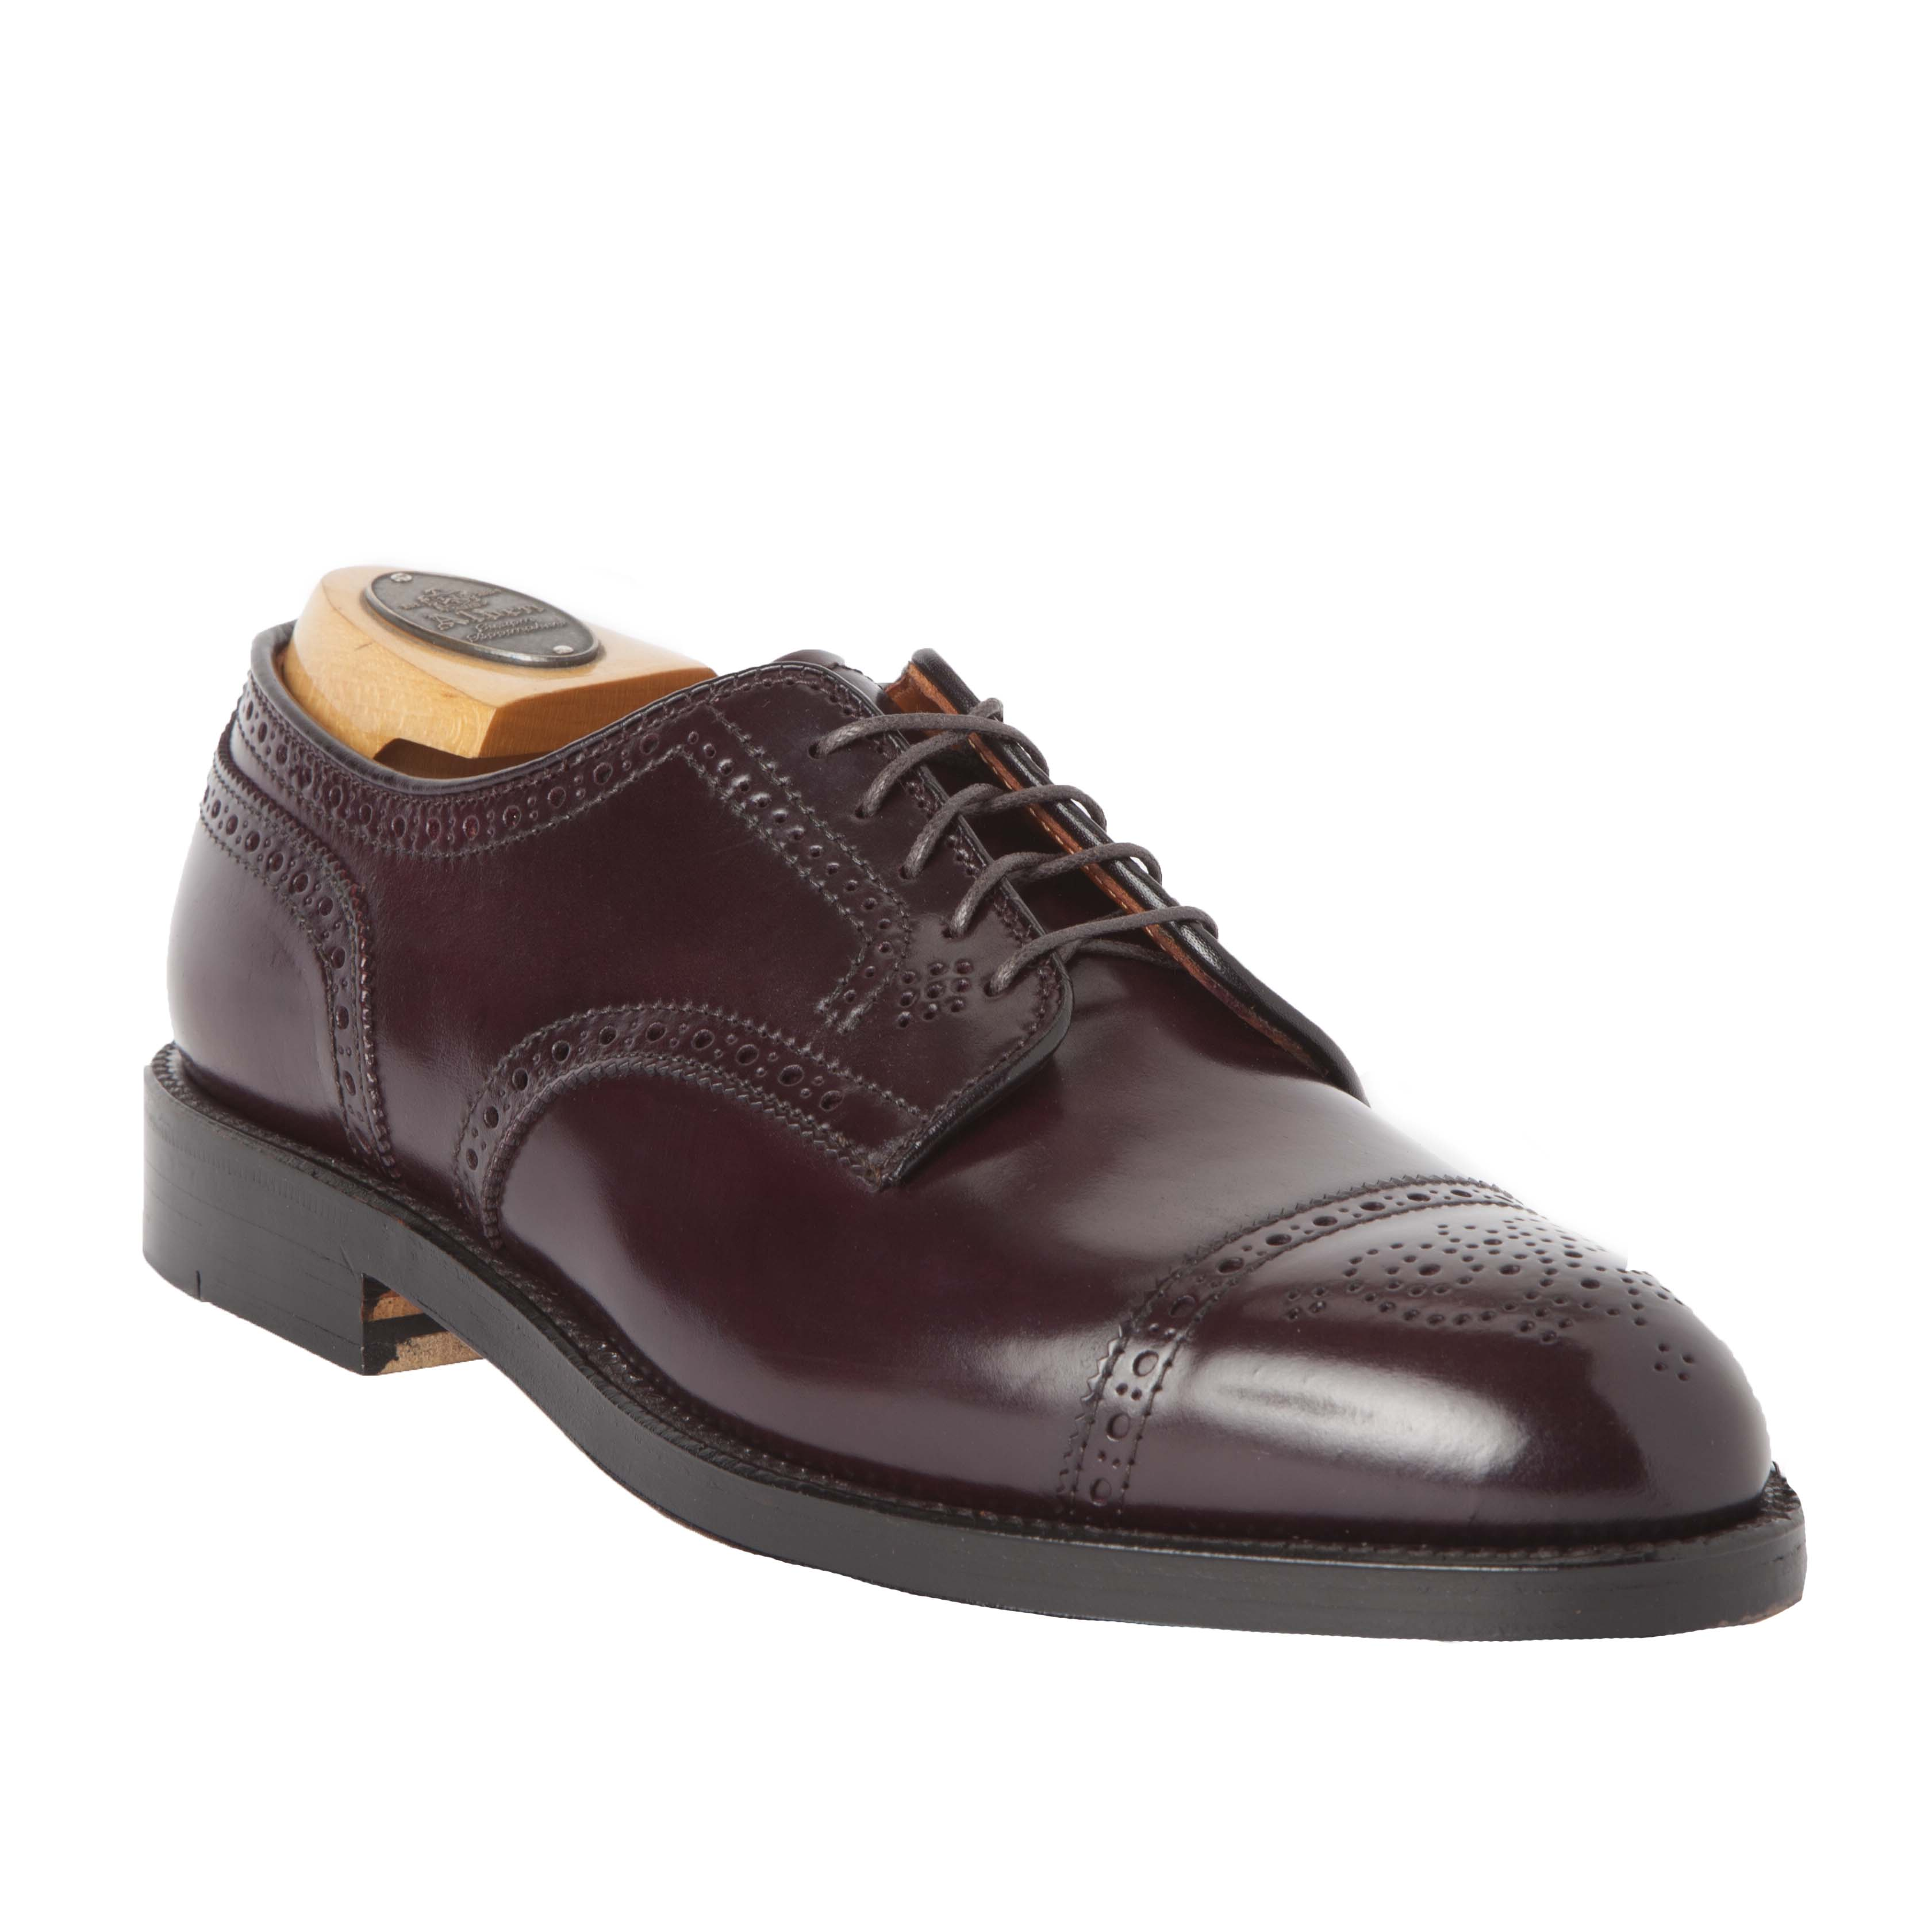 Shell Cordovan Alden Shoes Madison Avenue New York Part 3